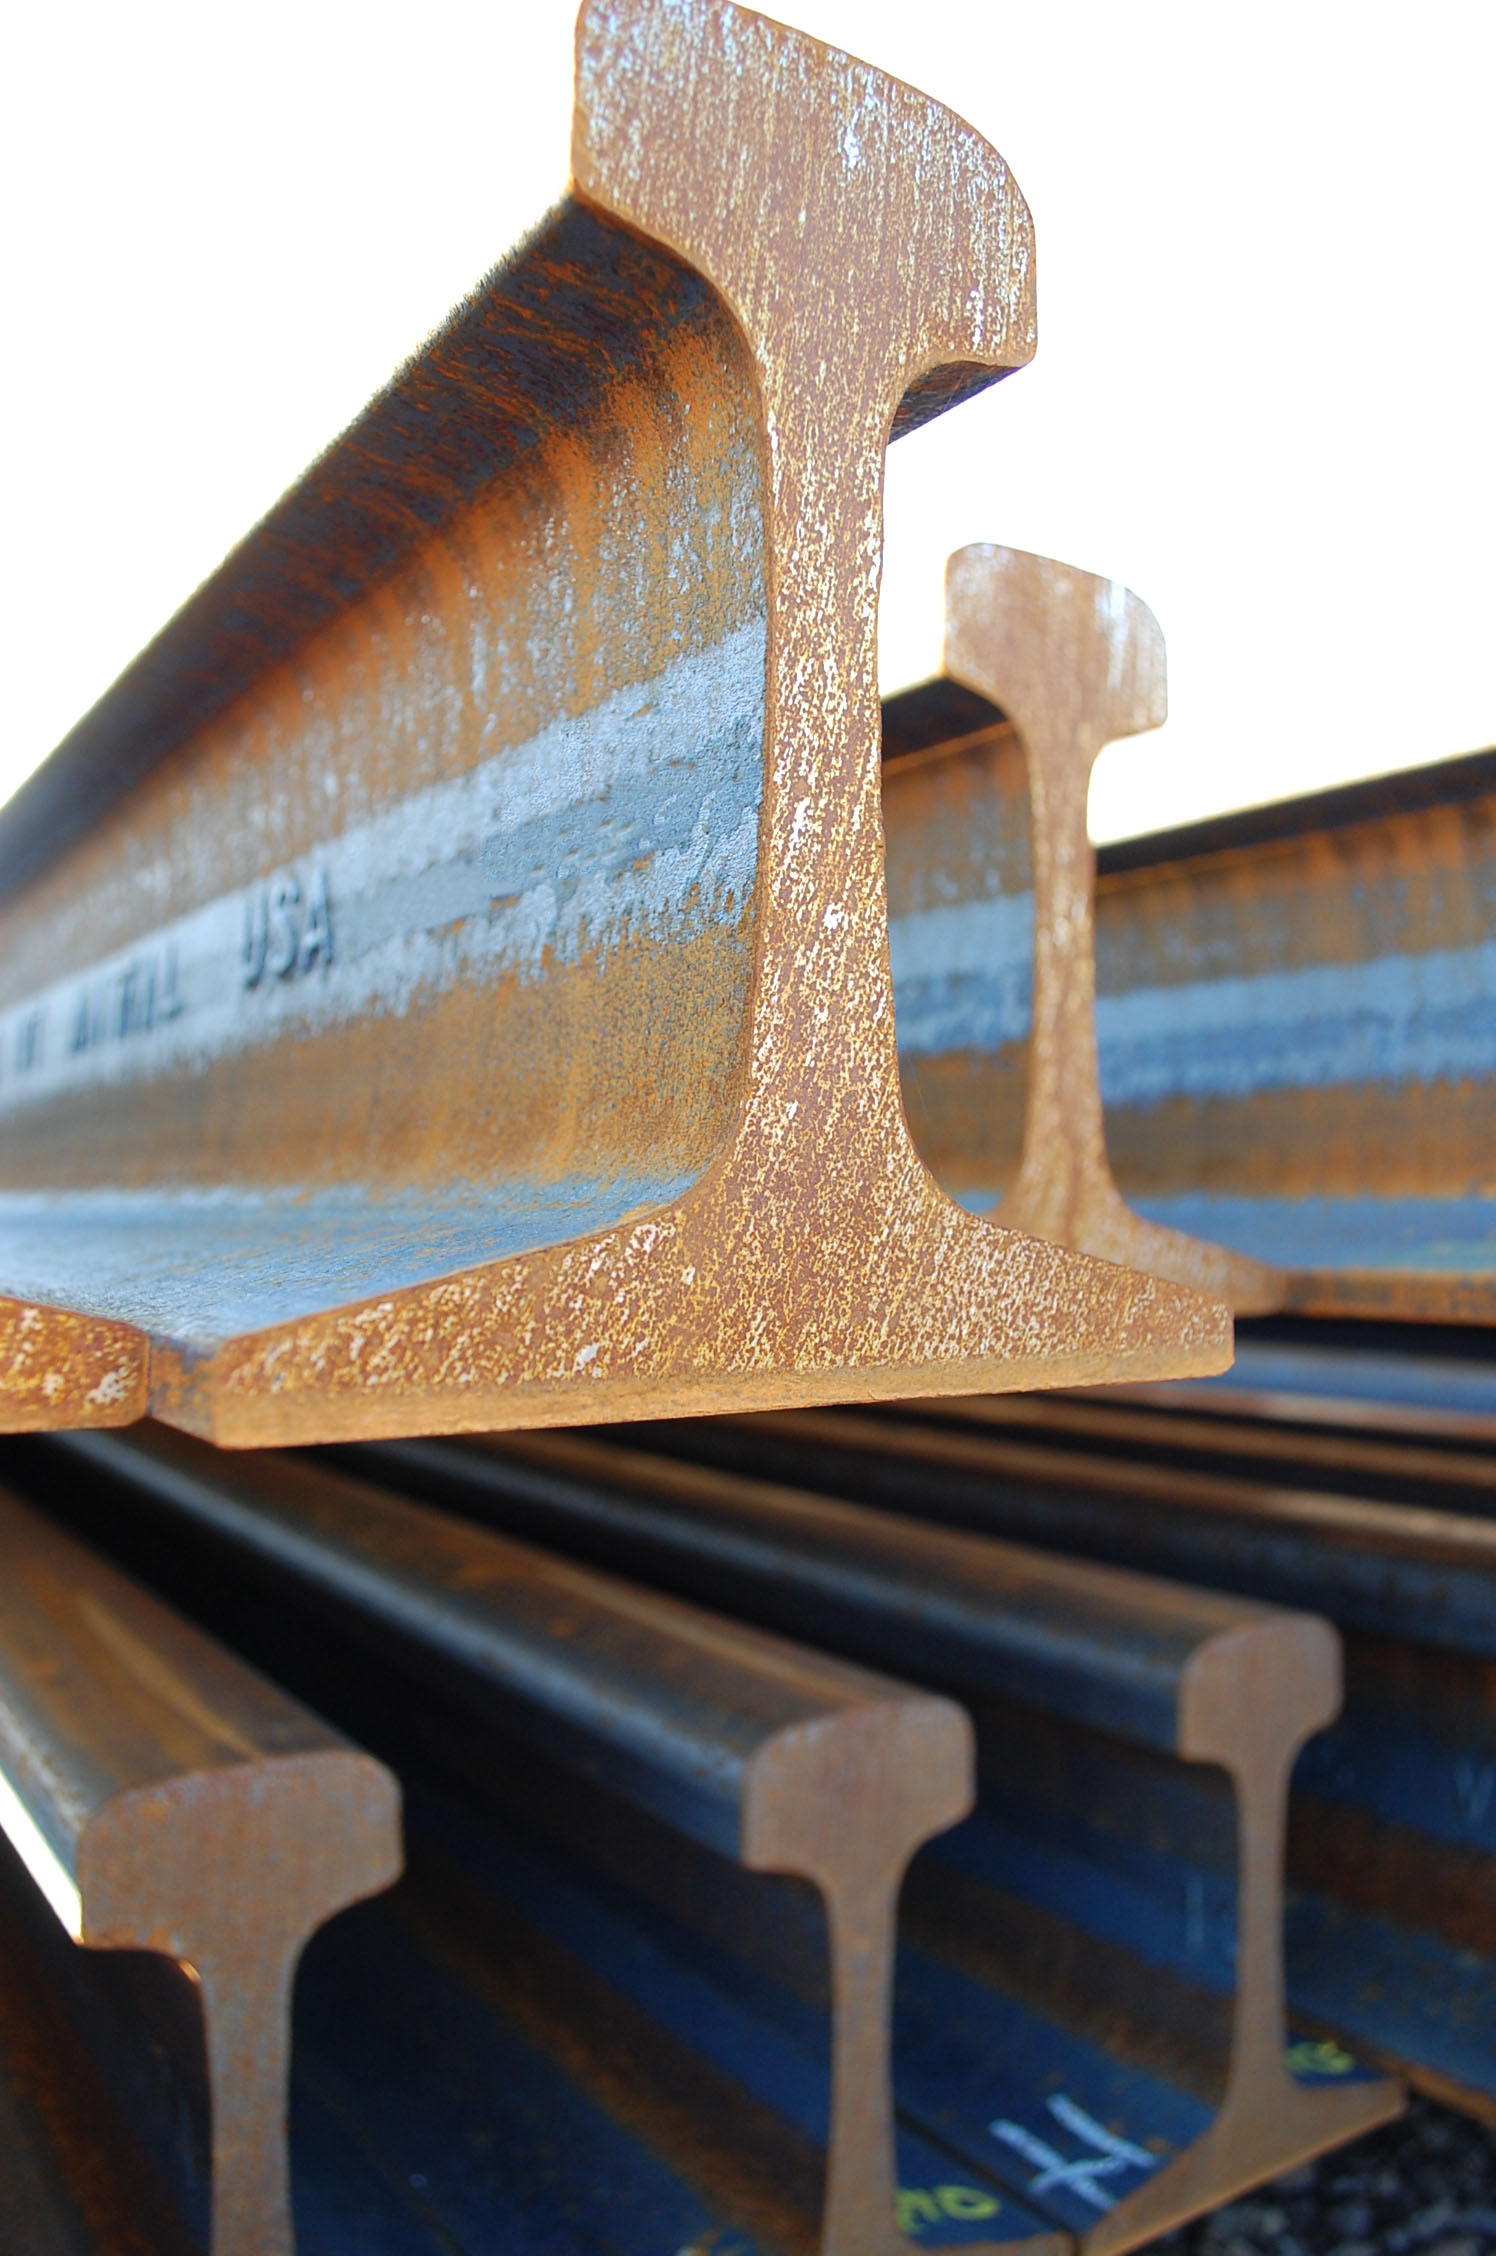 Ralroad Track Material - rail  -body copy photo.jpg